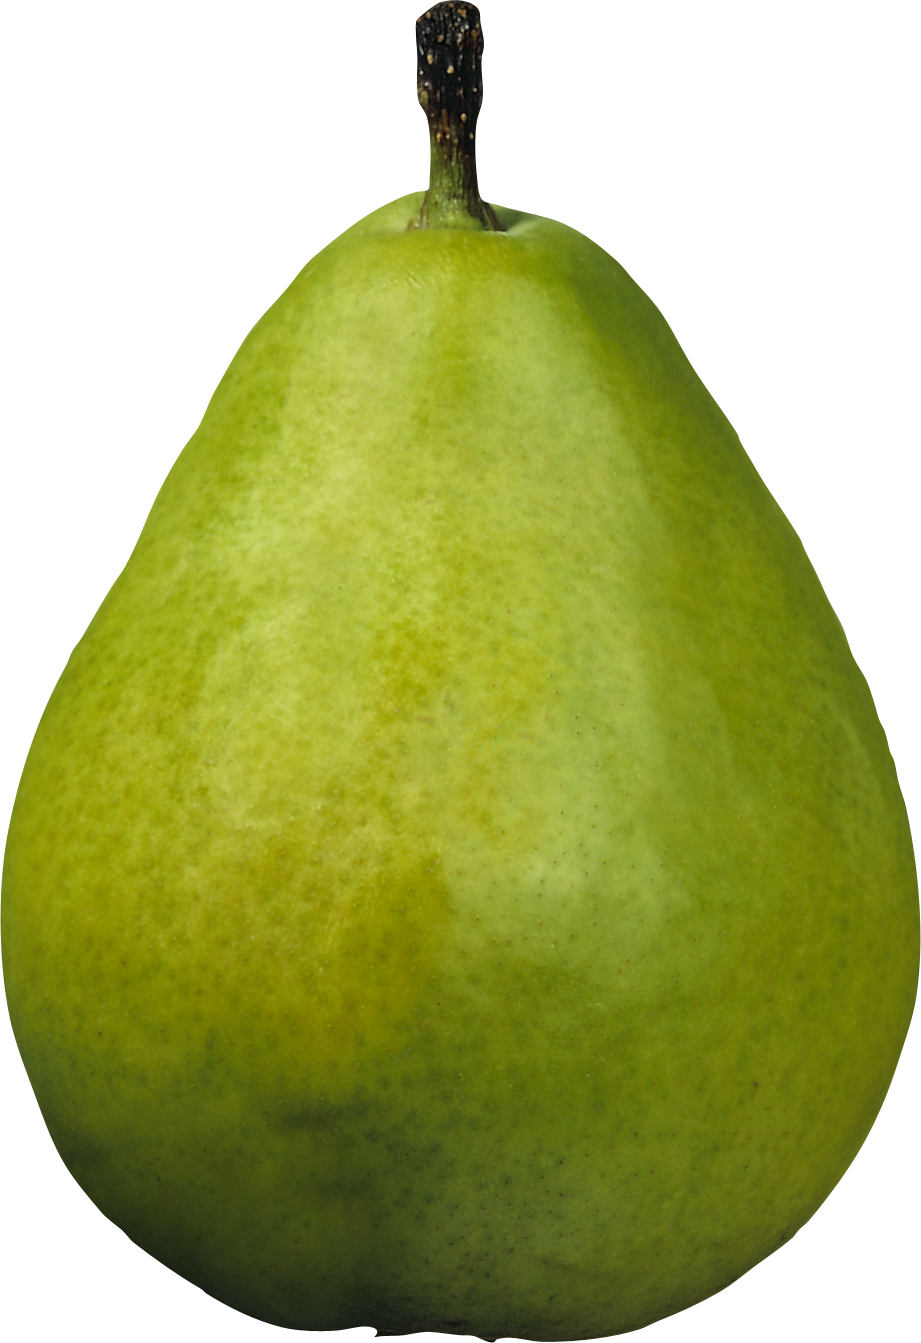 Pear clipart green pear. Pears png image purepng